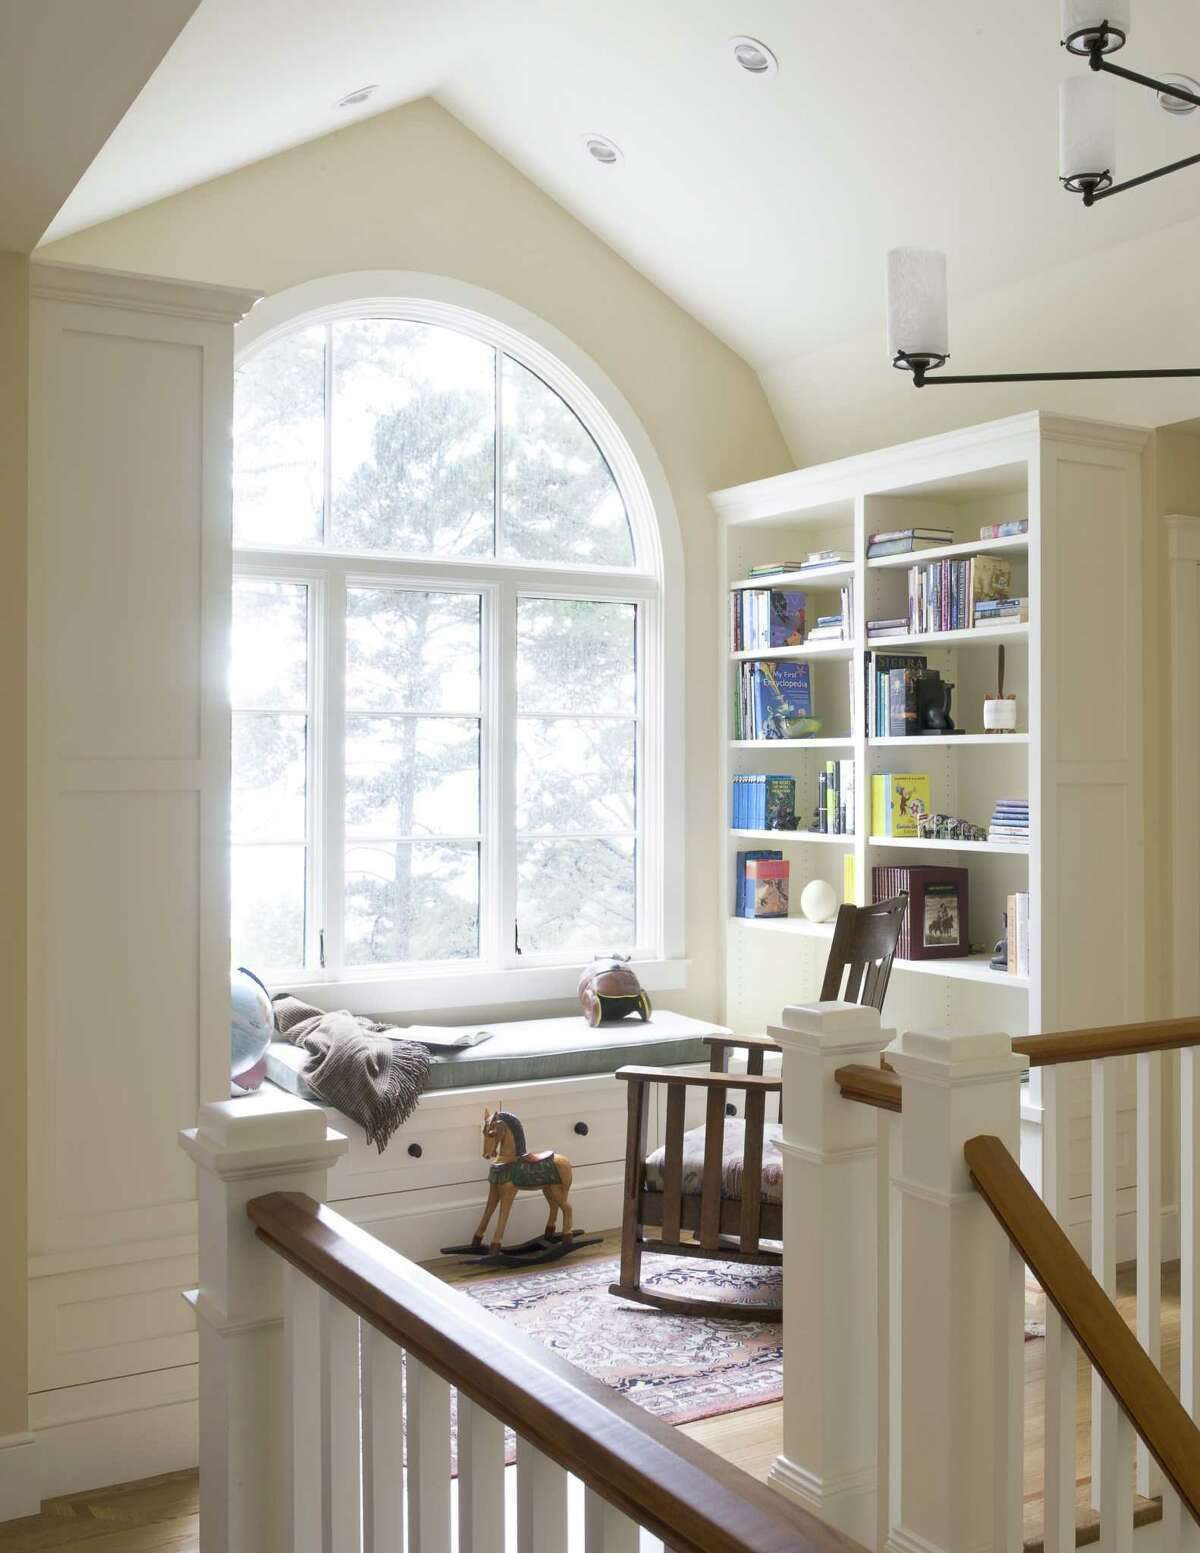 Even with a small landing, you can create a reading nook with a built-in banquette window seat.